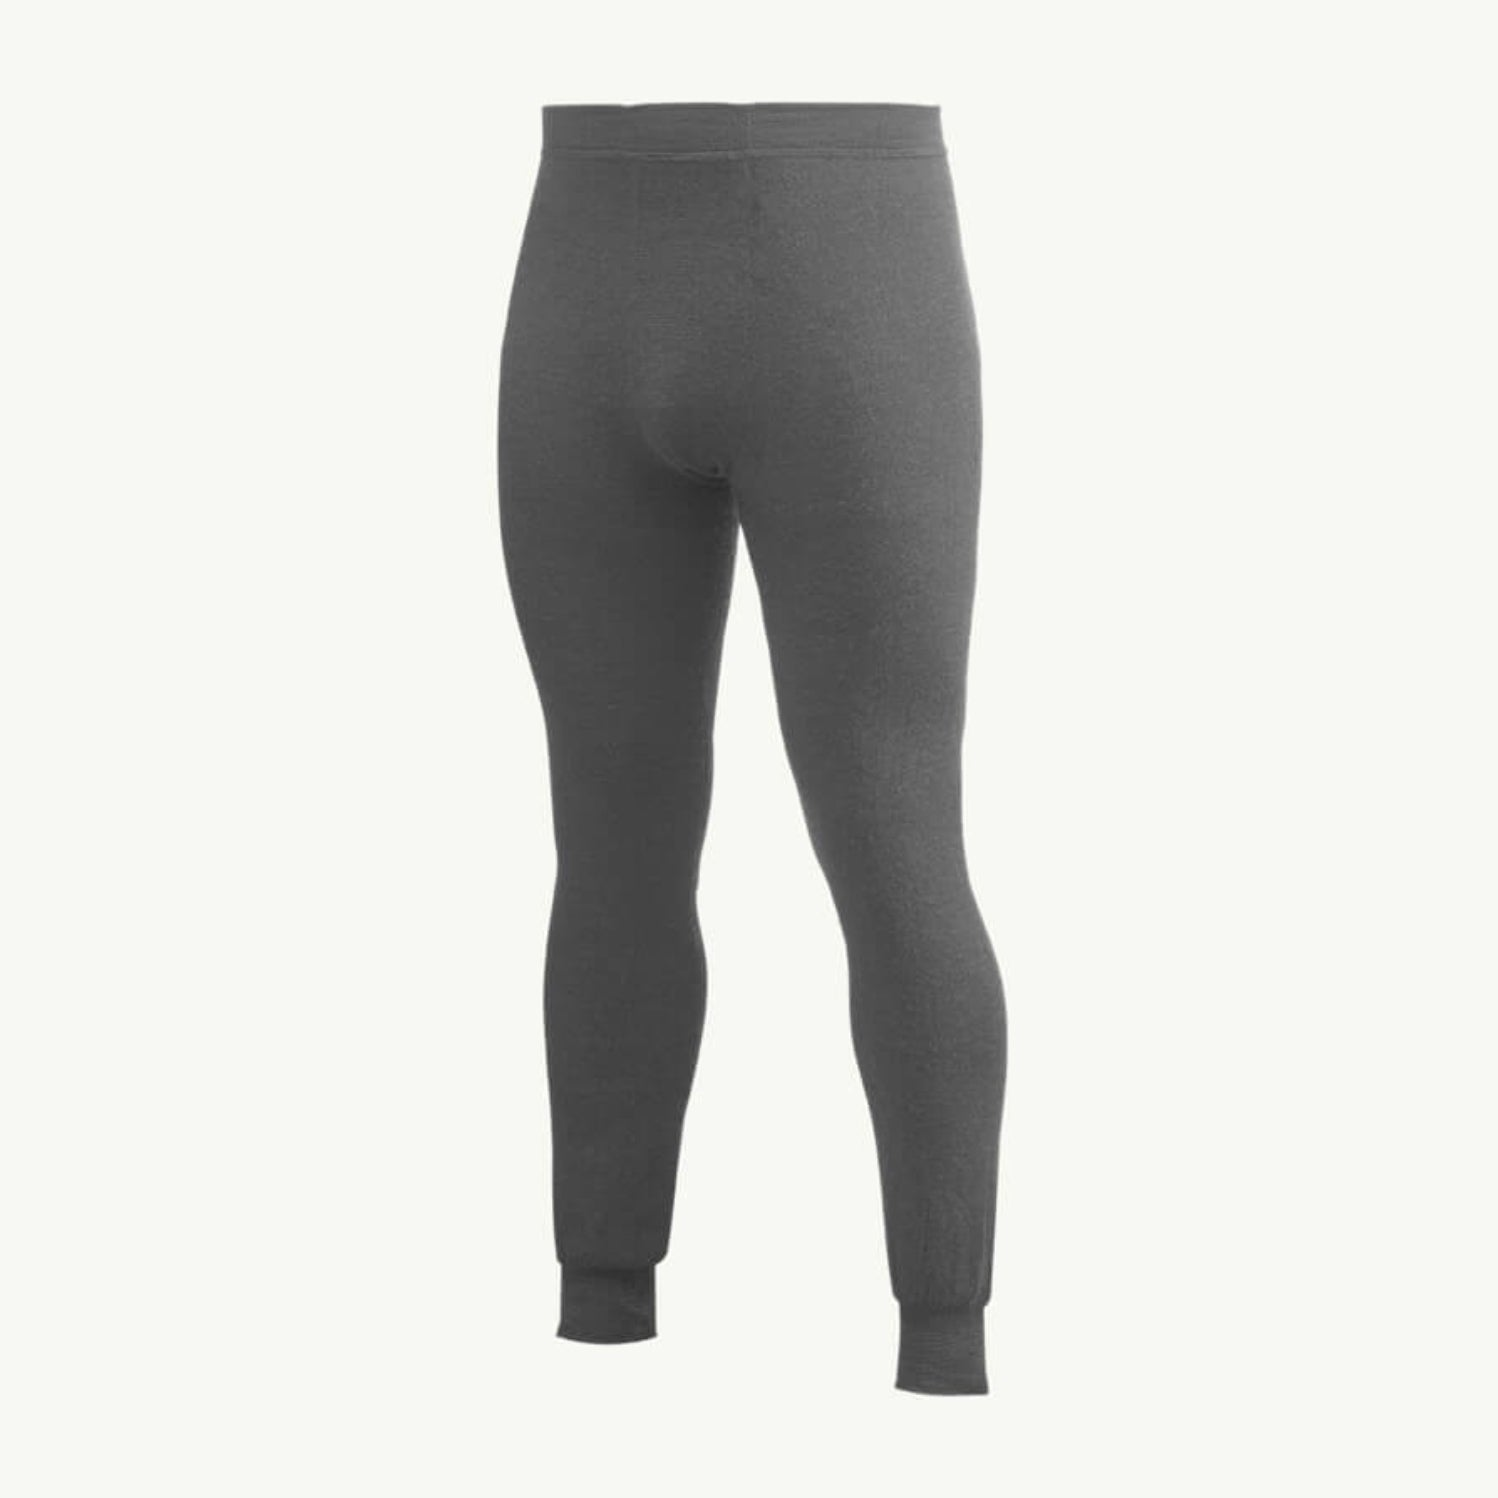 WOOLPOWER LONG JOHNS 200 – UNISEX – GREY